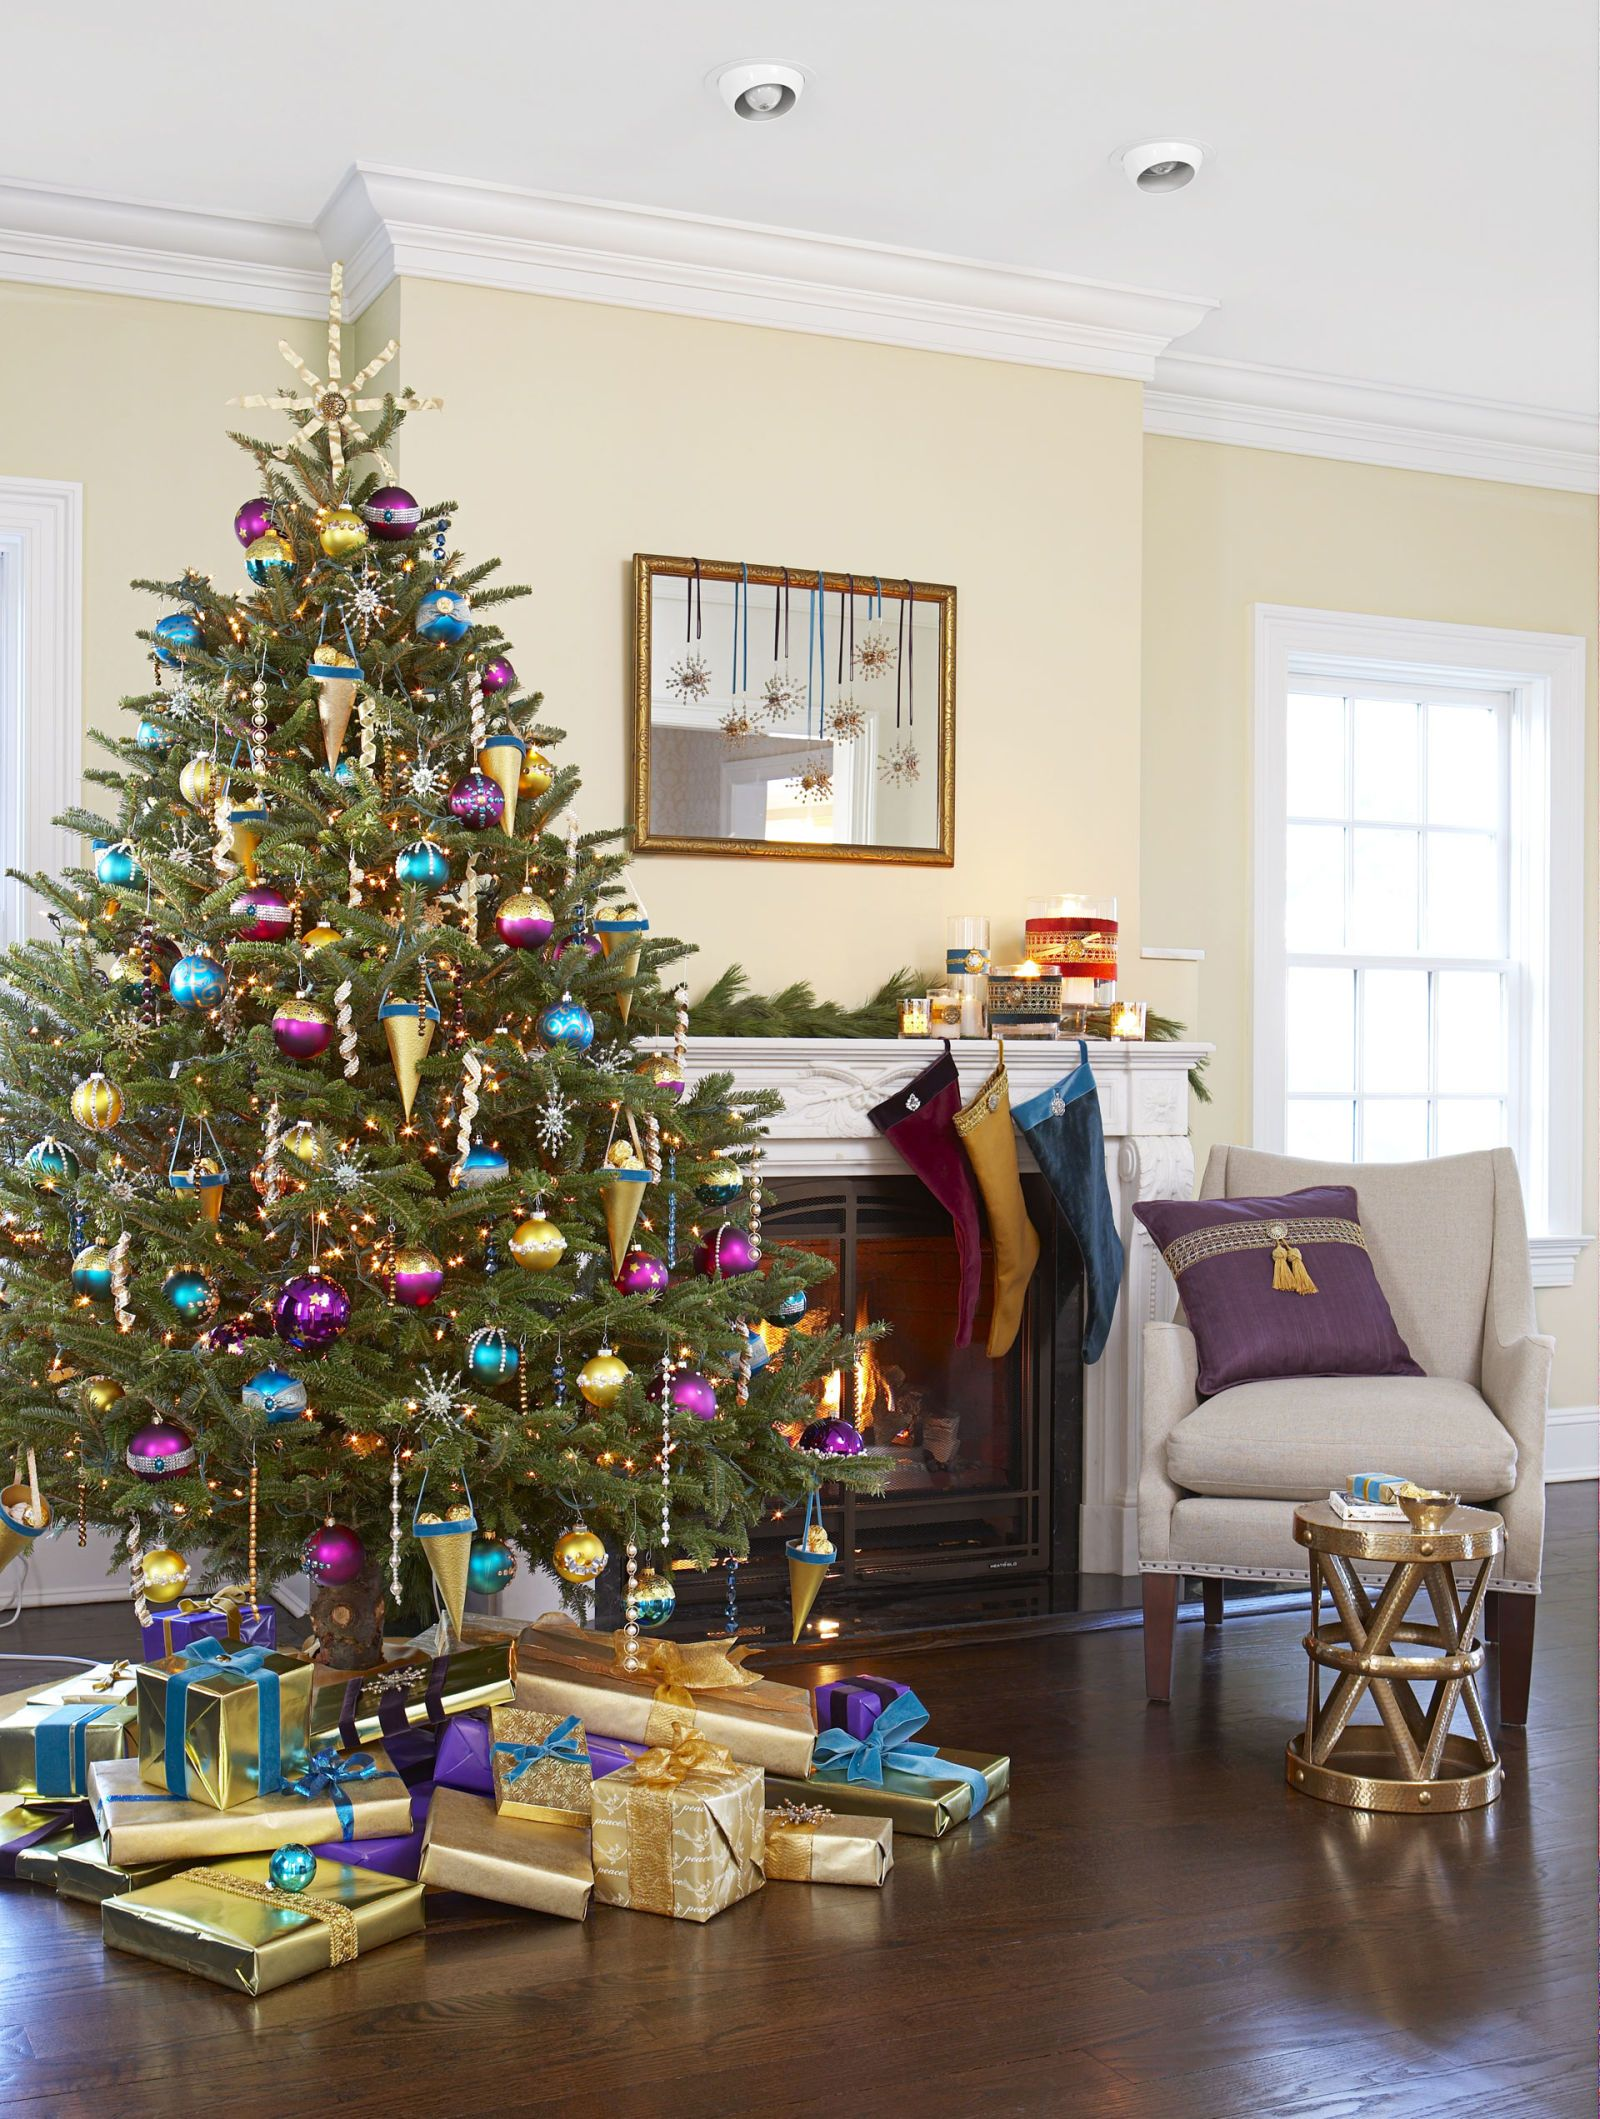 50 christmas tree decoration ideas pictures of beautiful christmas trees - Purple And Gold Christmas Decorations